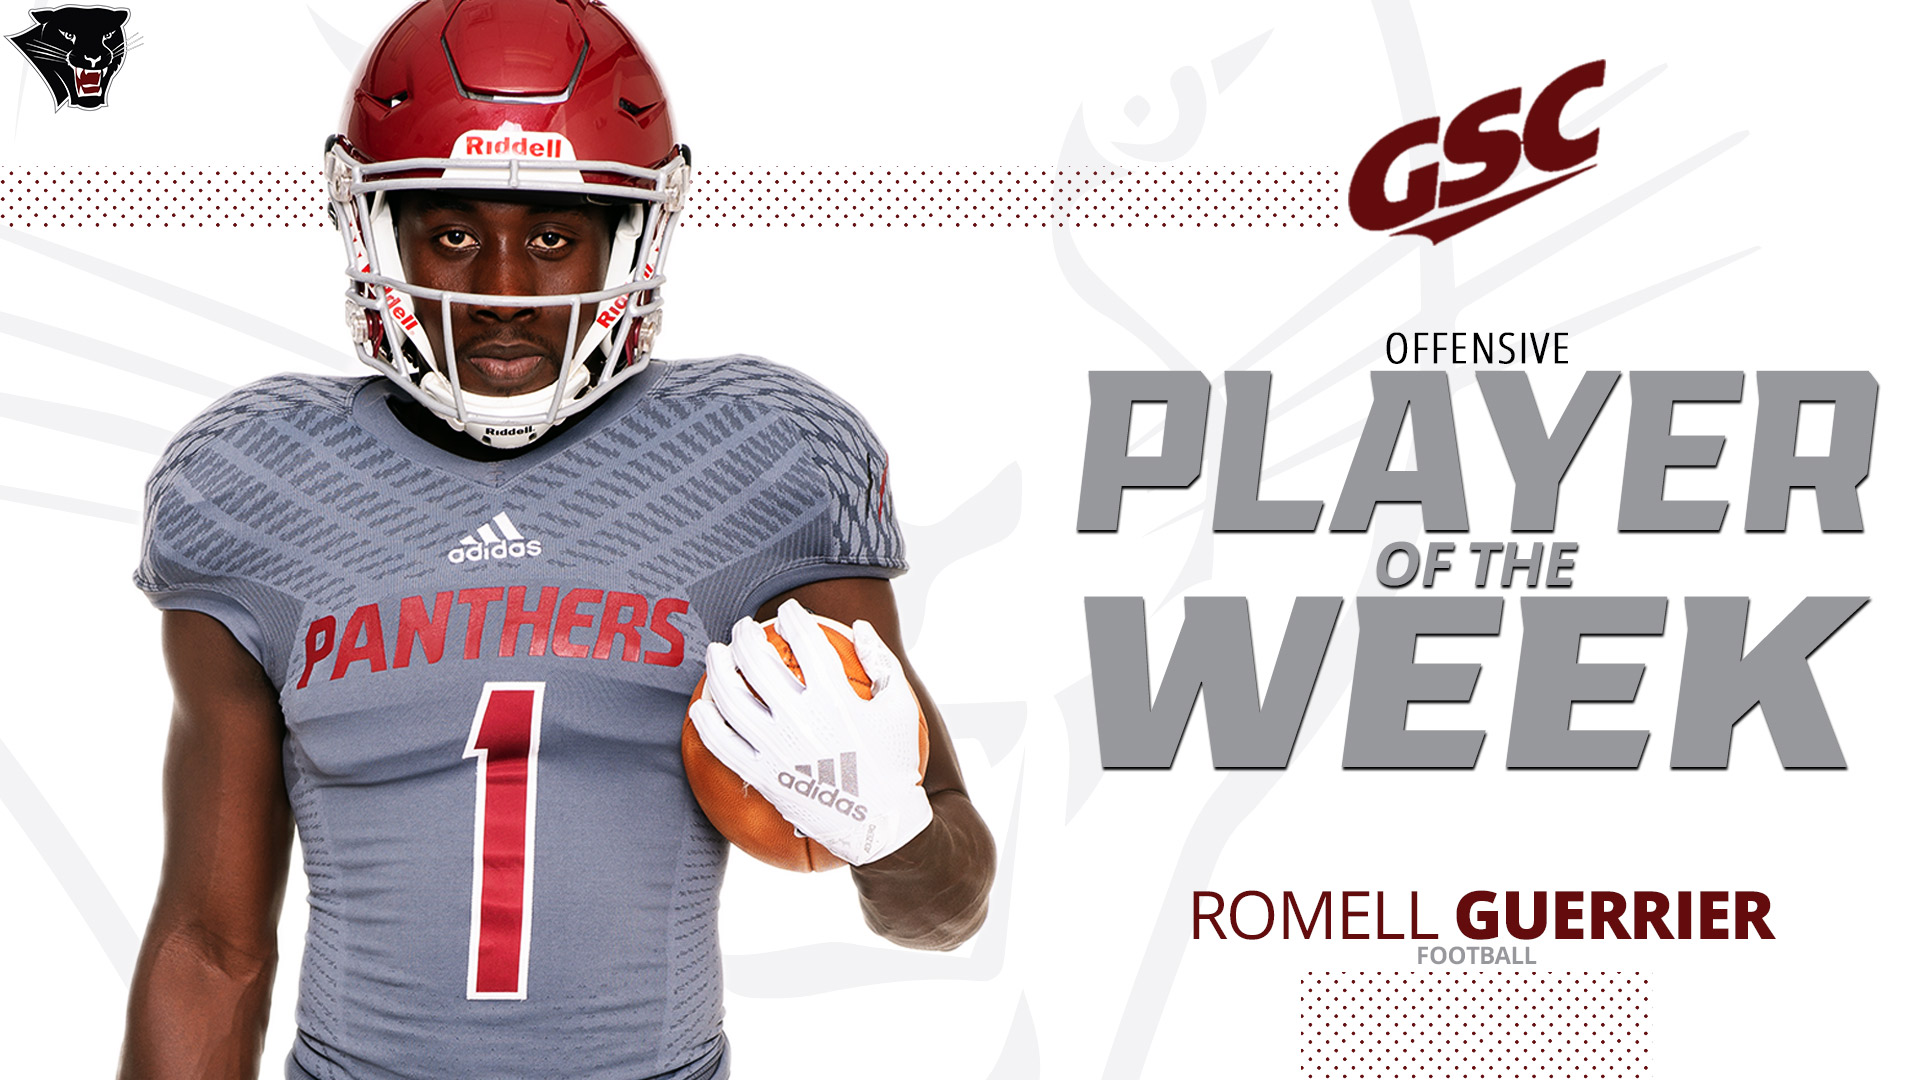 sports shoes fd267 ed498 Guerrier Named GSC Offensive Player of the Week - Florida ...